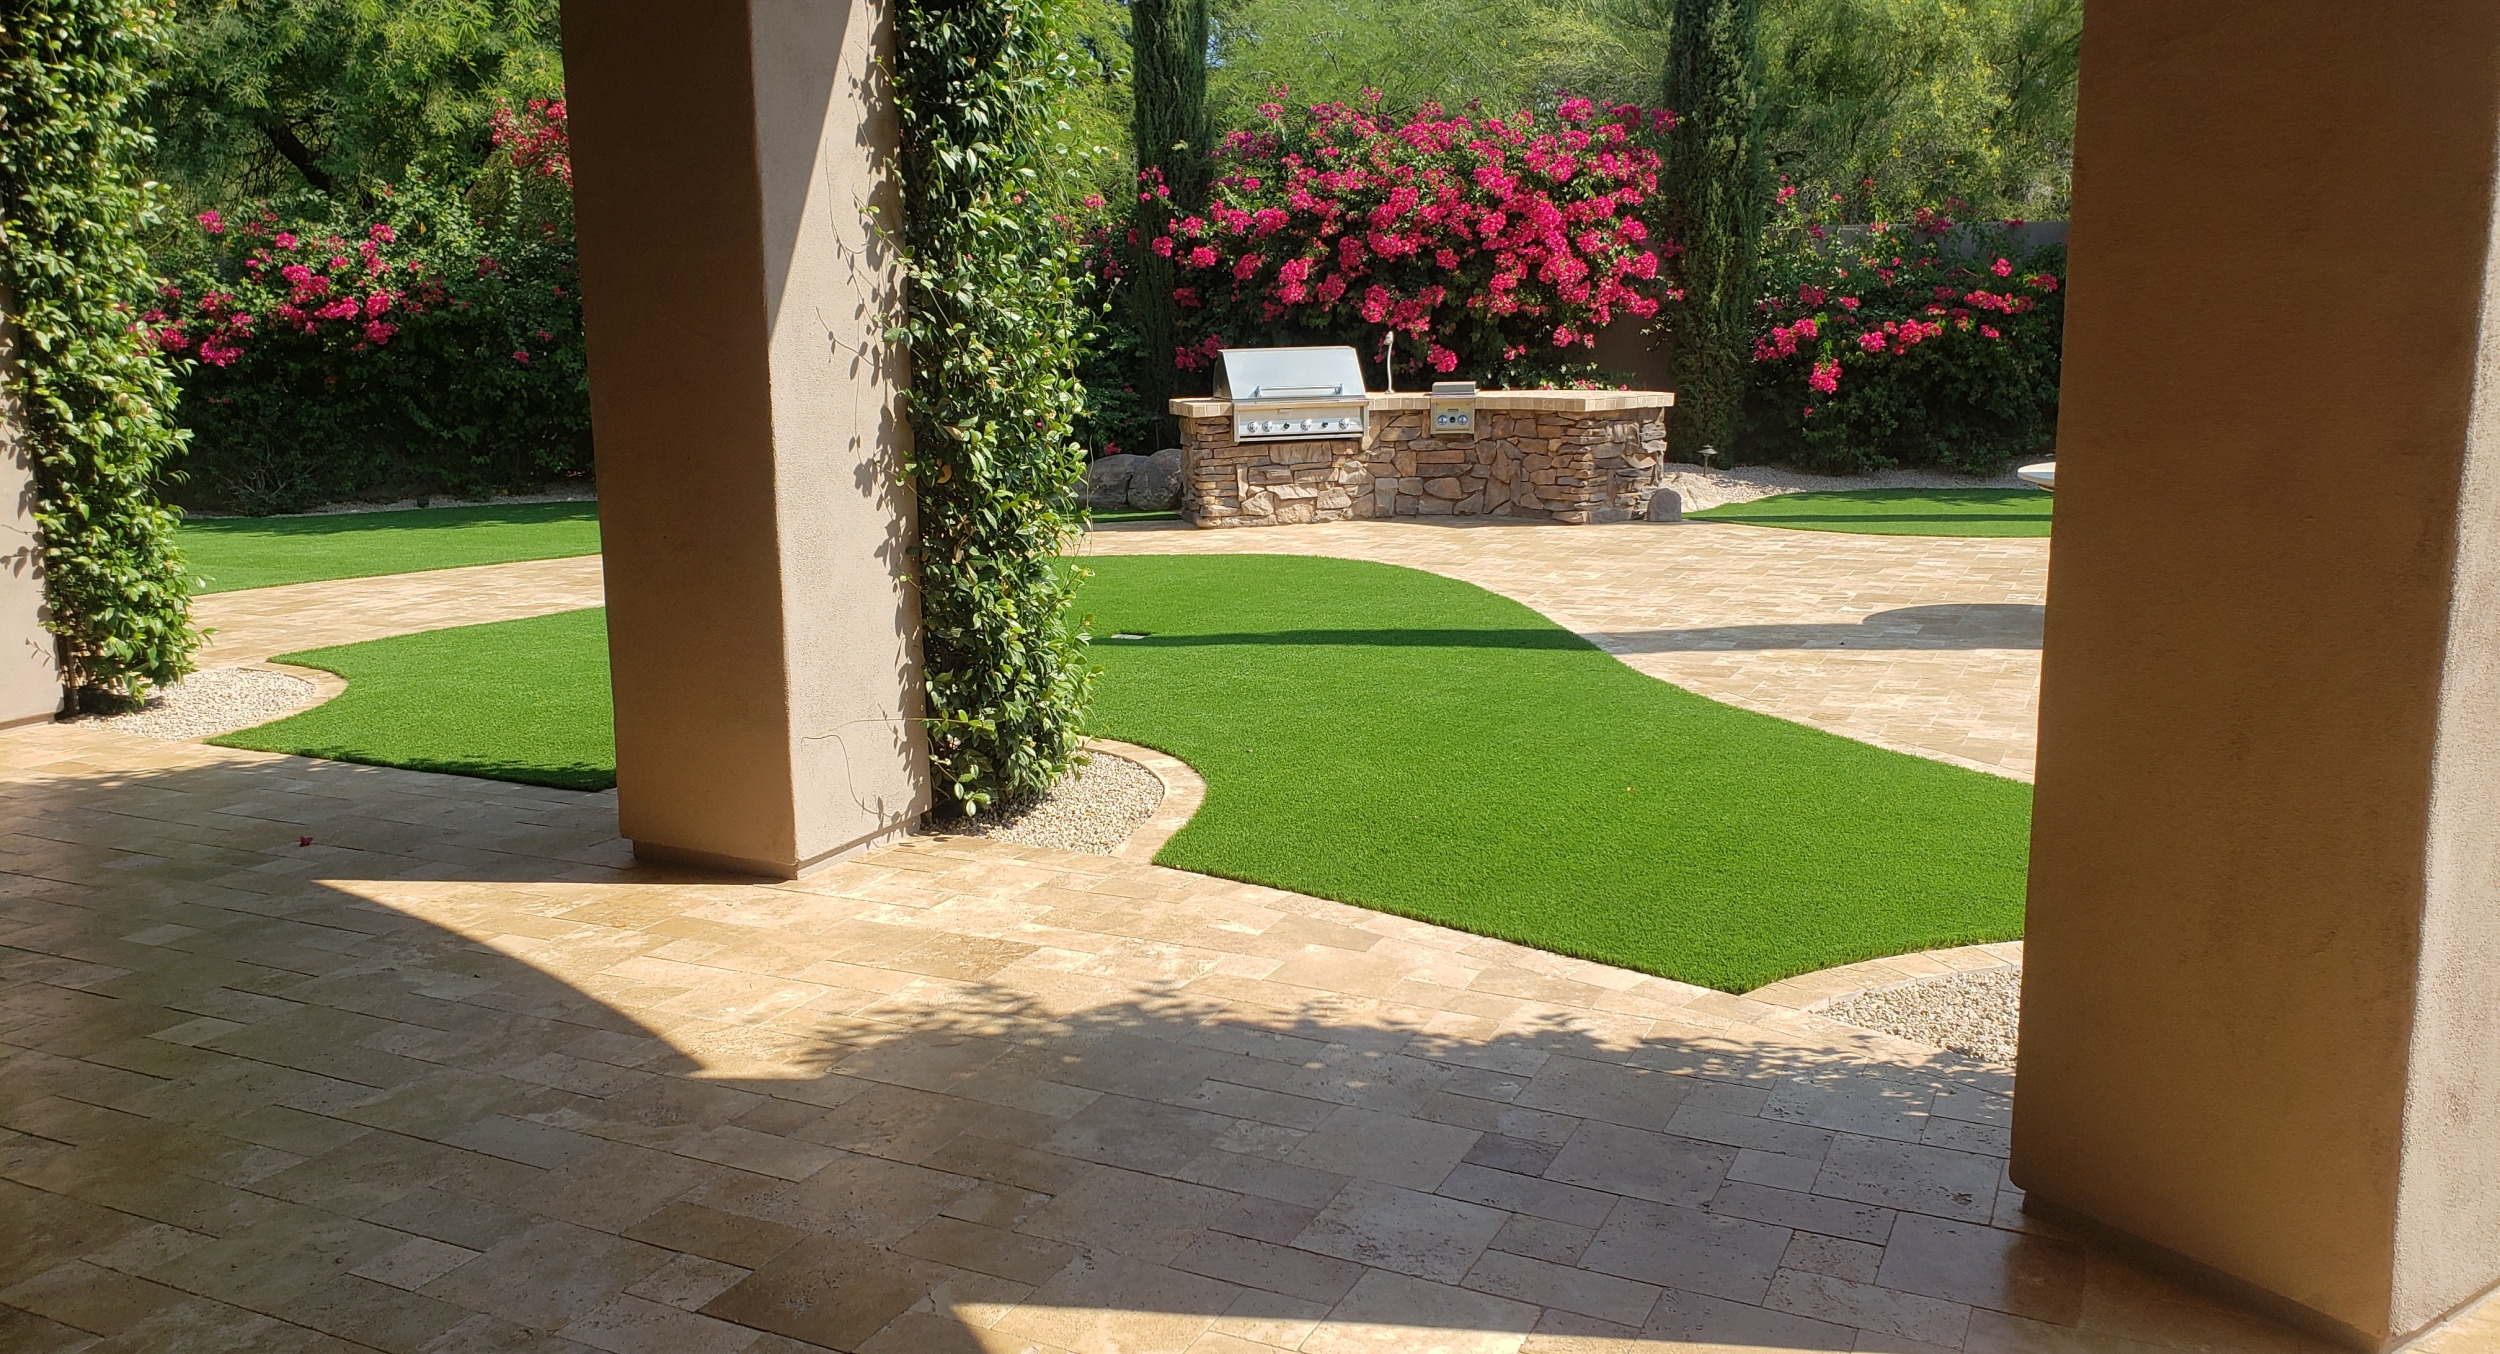 New home or updating an older one, beautiful surroundings come from solid Scottsdale landscape design. Here we updated this gorgeous property with travertine pavers, lots of synthetic grass, and in the spot - a built-in gas grill.